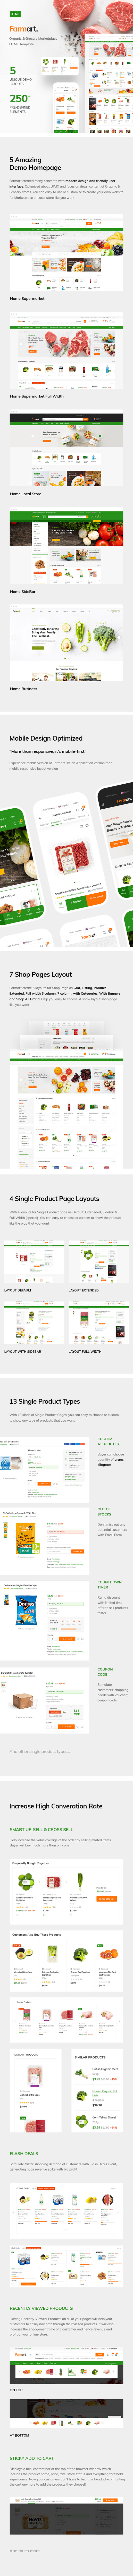 Martfury - Multipurpose Marketplace VueJS Ecommerce Template